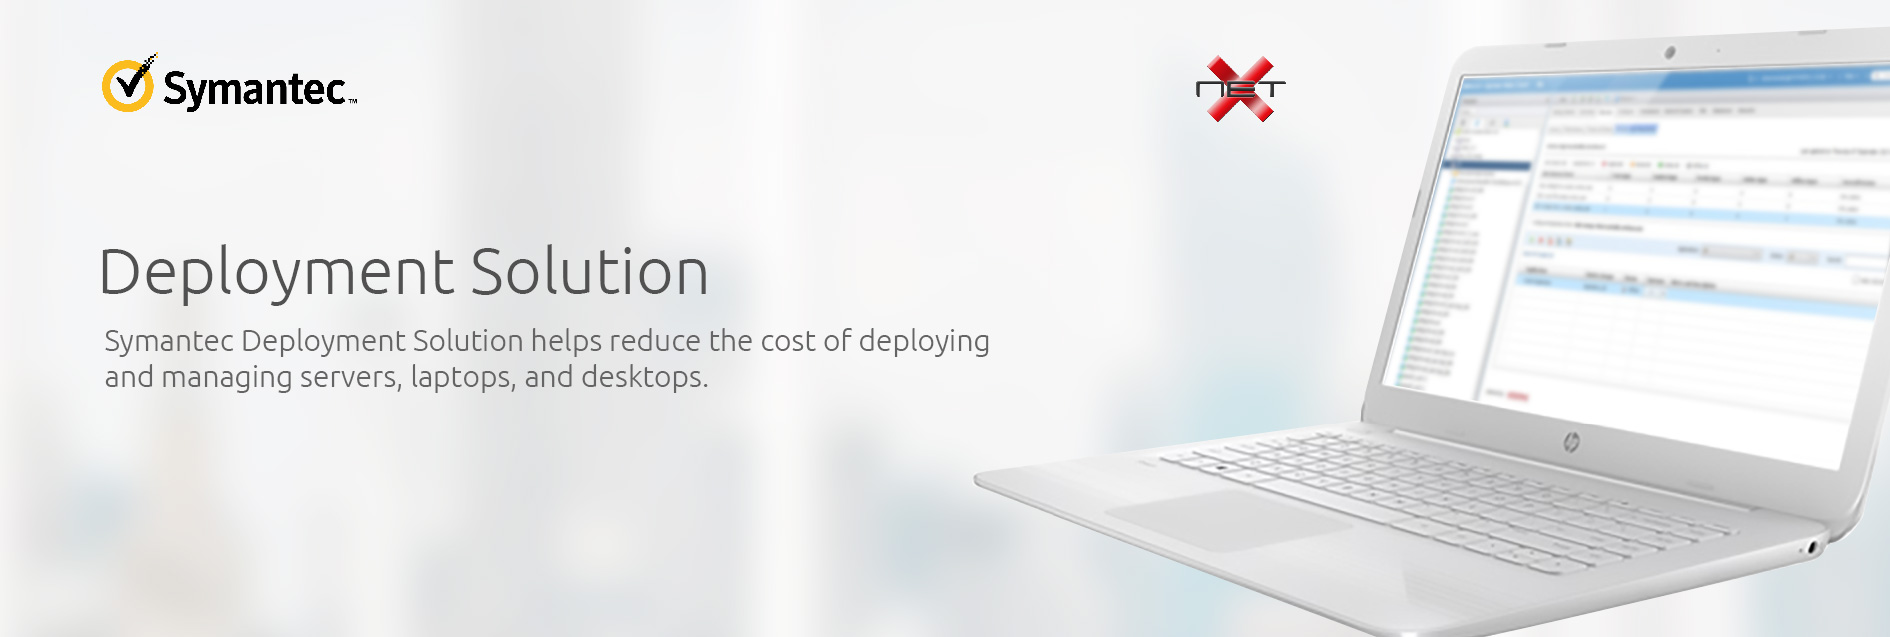 netx-symantec-deployment-solution-banner